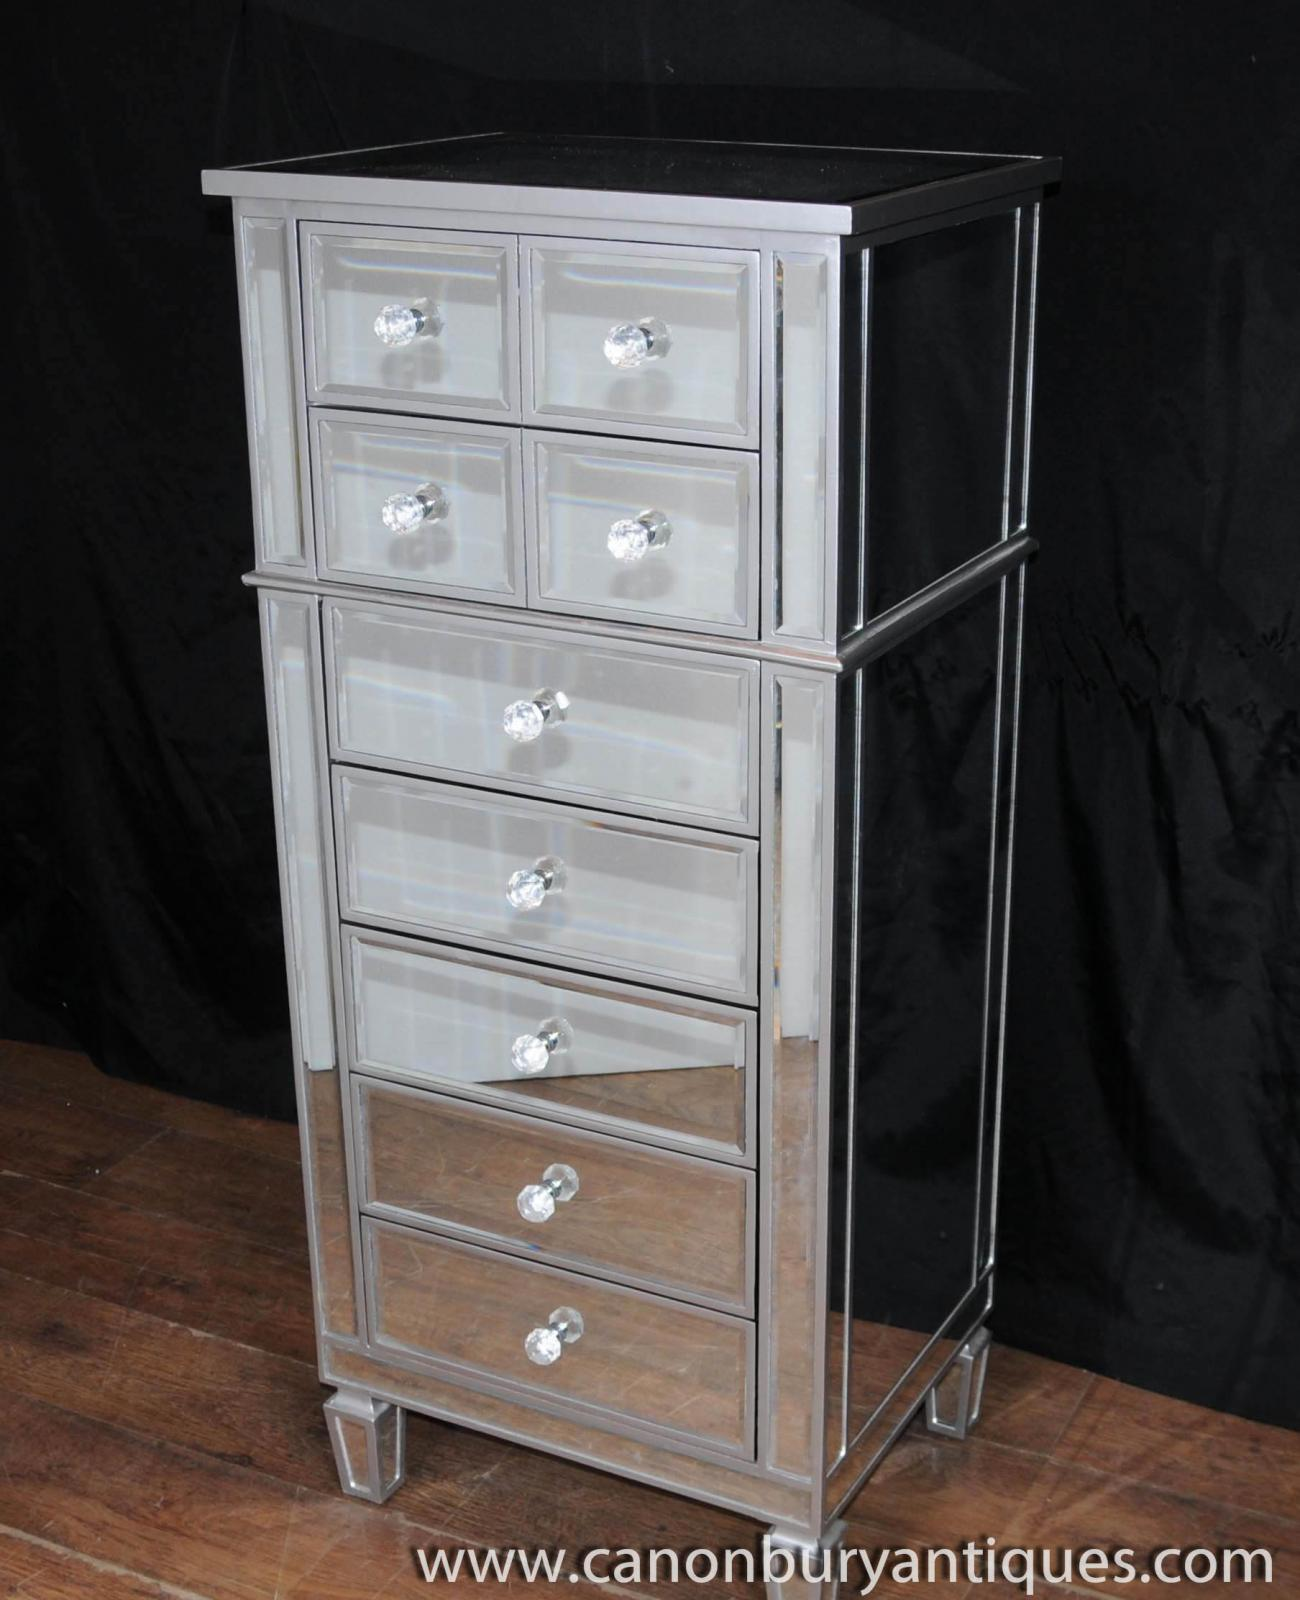 #654534 Photo Of Art Deco Mirror Chest Drawers Tall Boy Mirrored Furniture with 1300x1600 px of Best Tall Mirrored Chest Of Drawers 16001300 image @ avoidforclosure.info